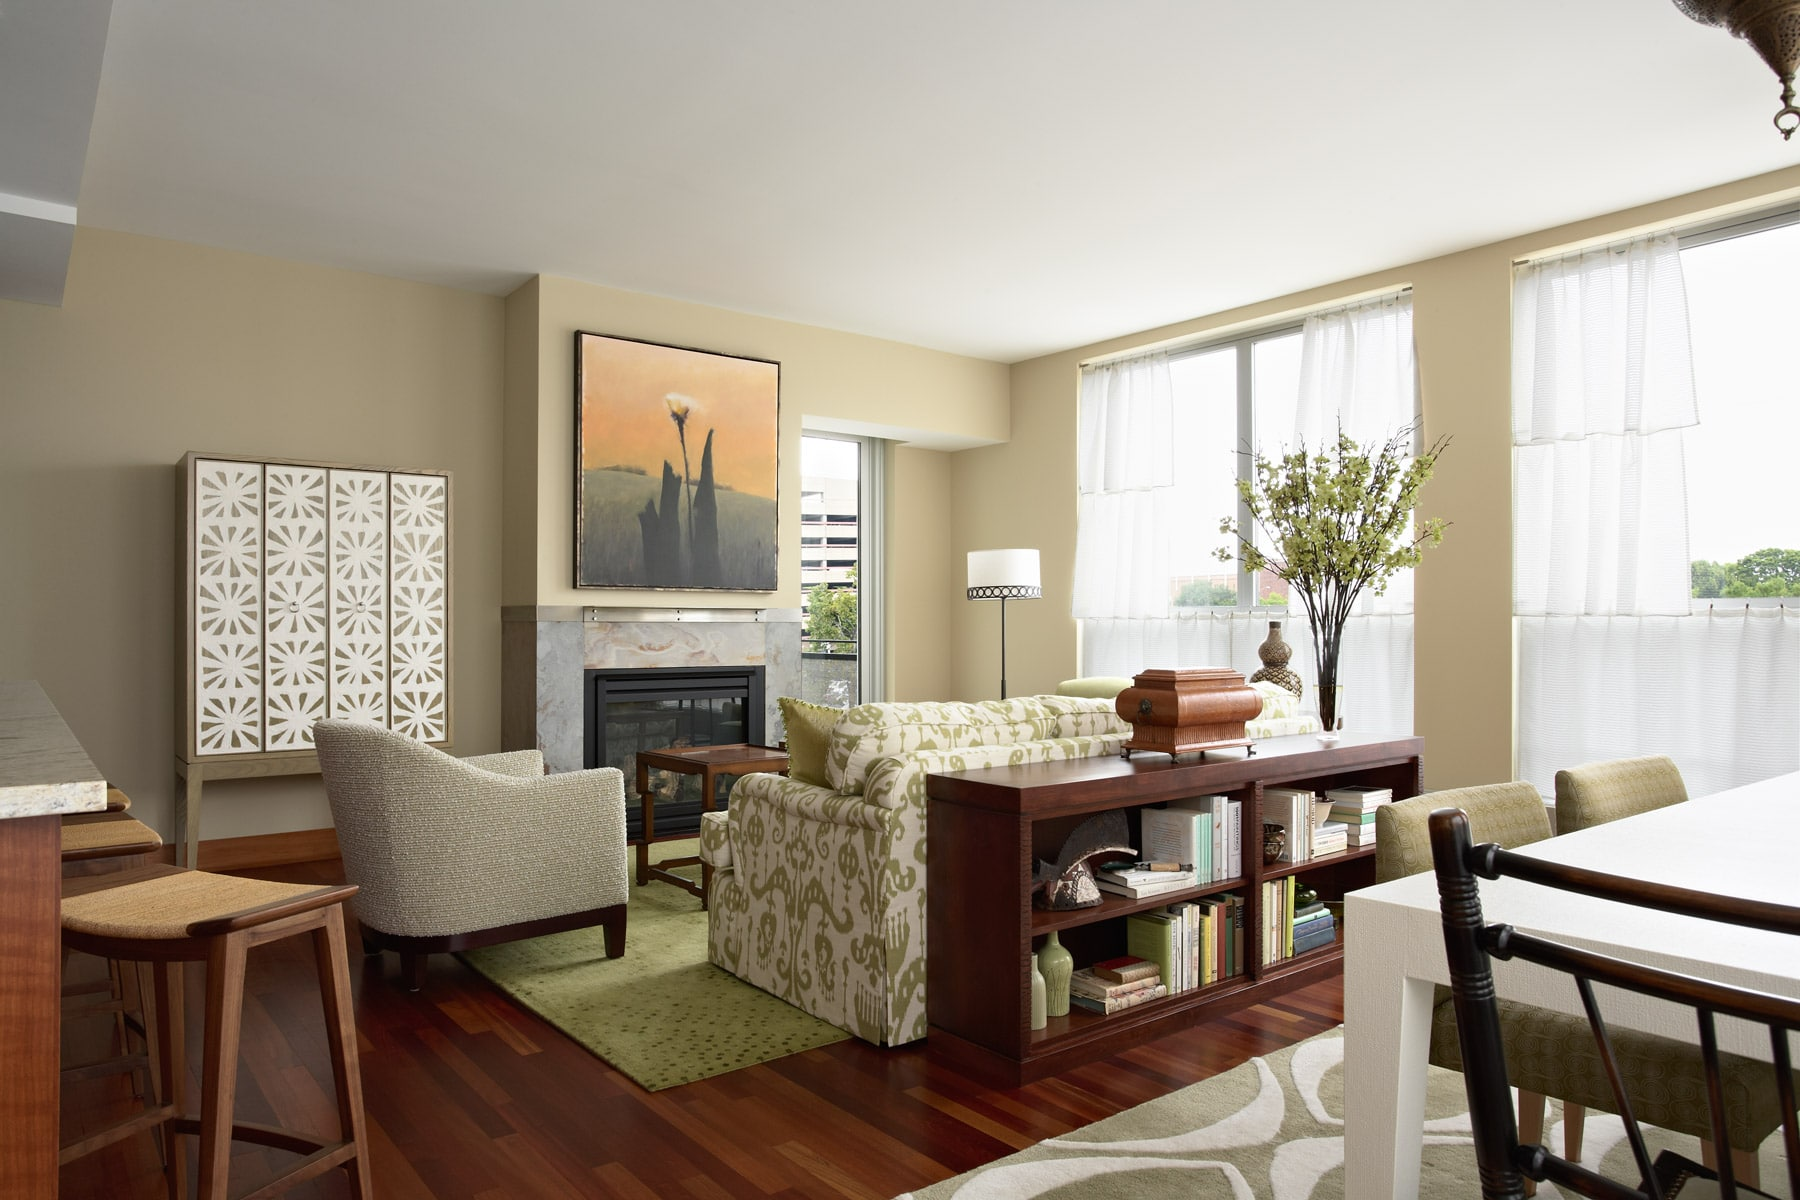 Upscale-Condo-Design-Living-Room-Minneapolis-interior-designer.jpg